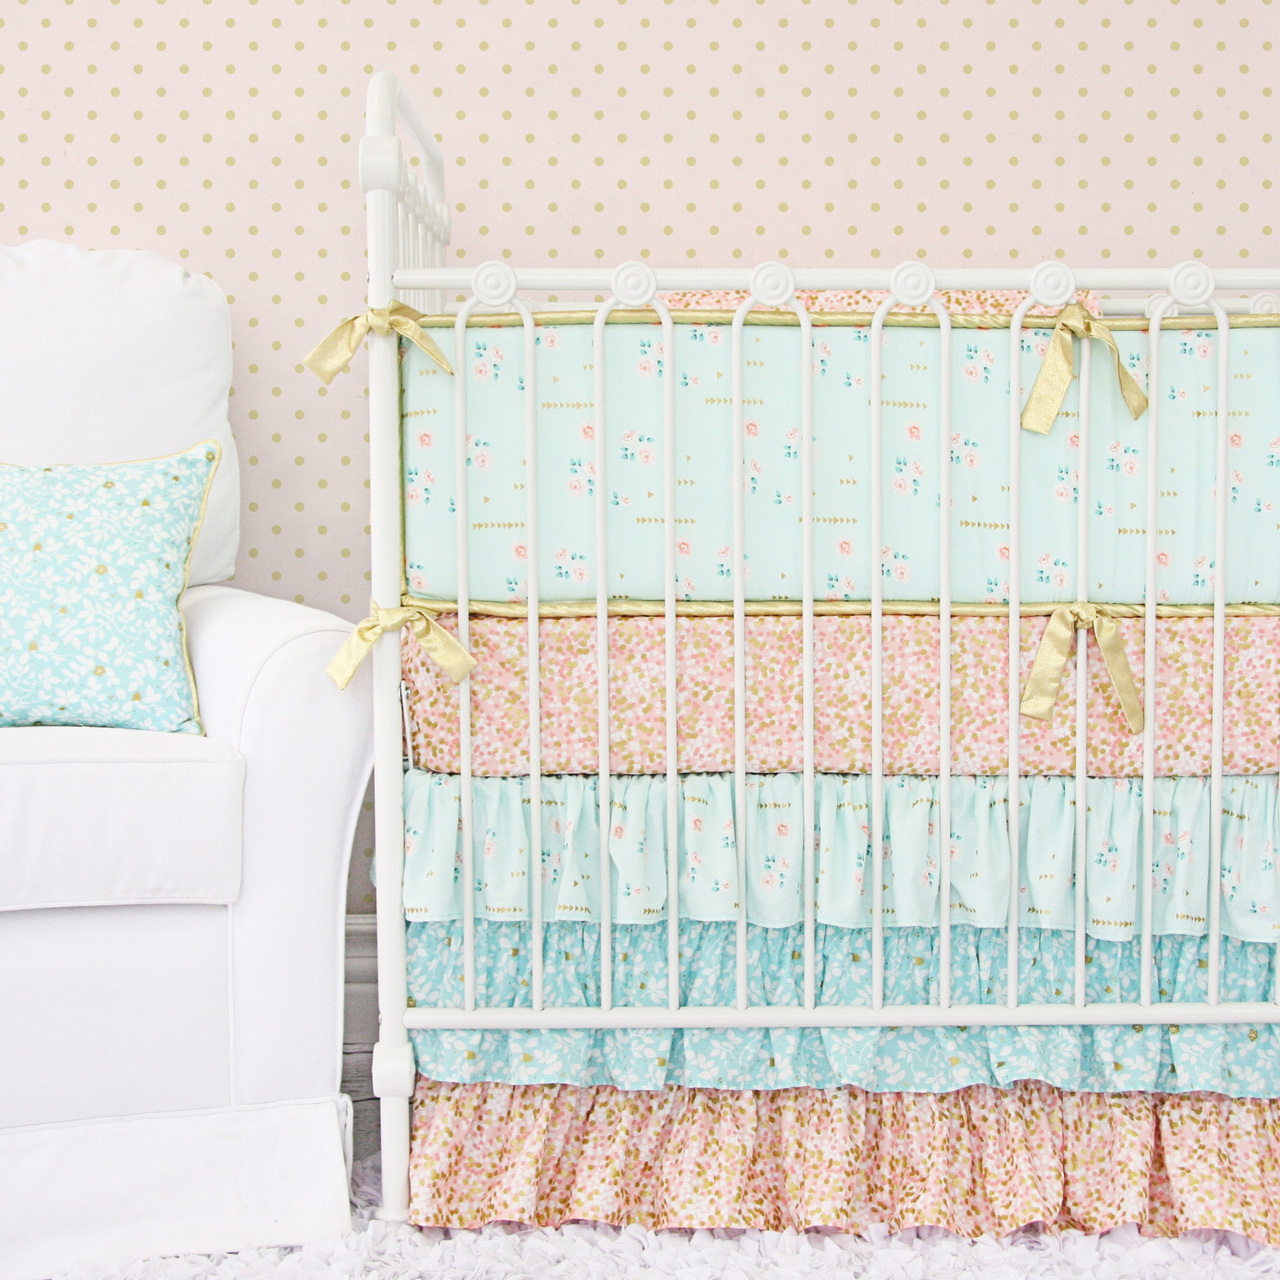 Marion S Coral And Gold Polka Dot Nursery: Giveaway: Crib Bedding From Caden Lane